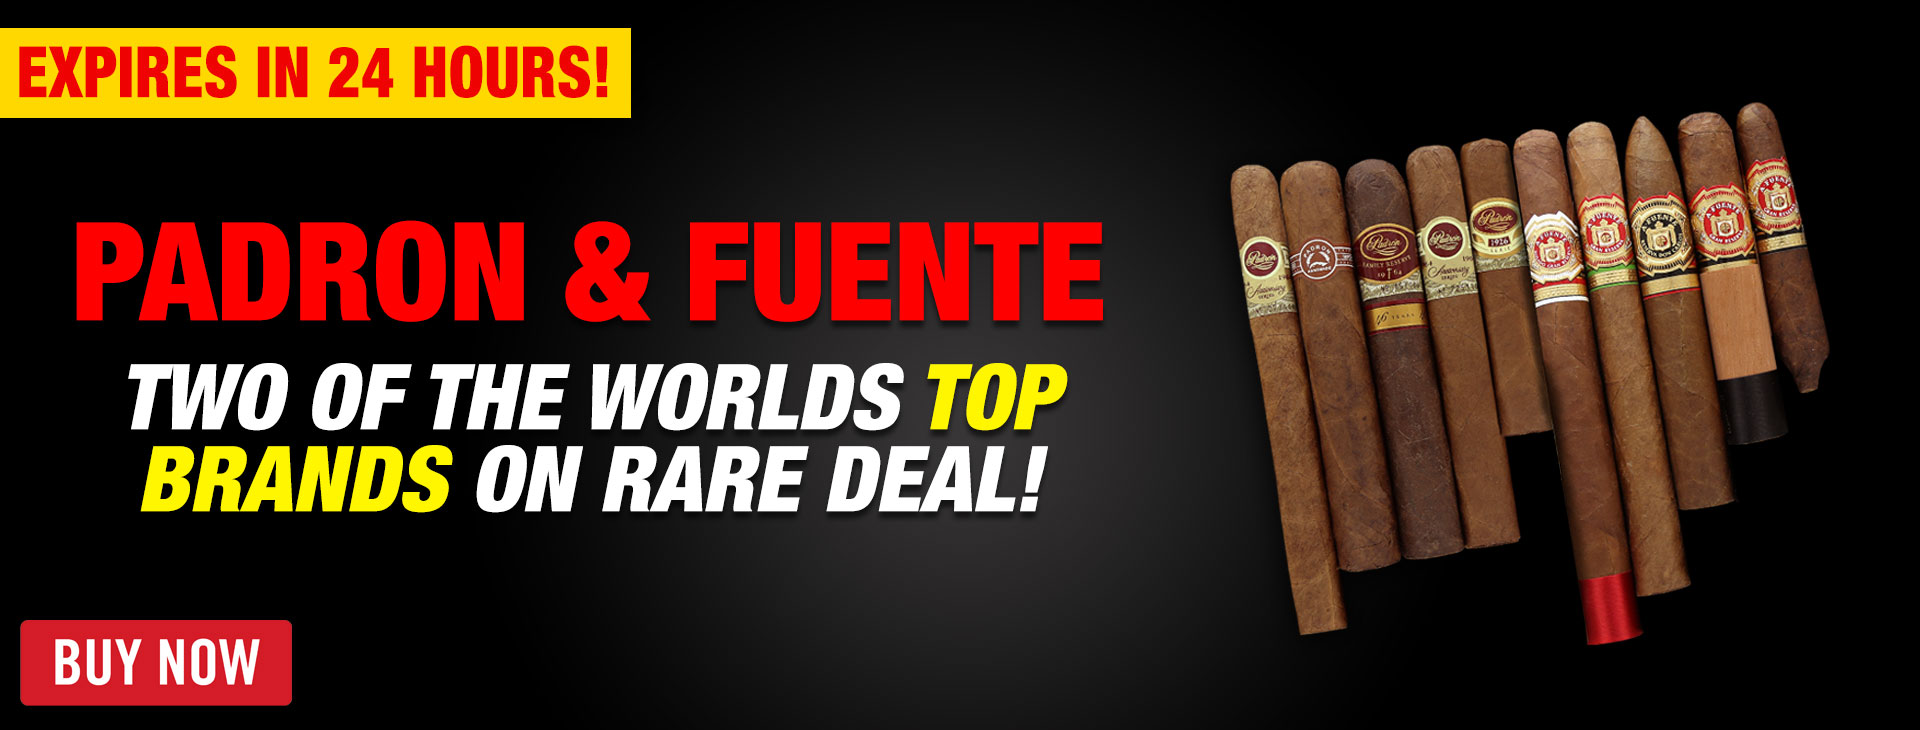 padron-fuente-double-deal-2021-banner.jpg